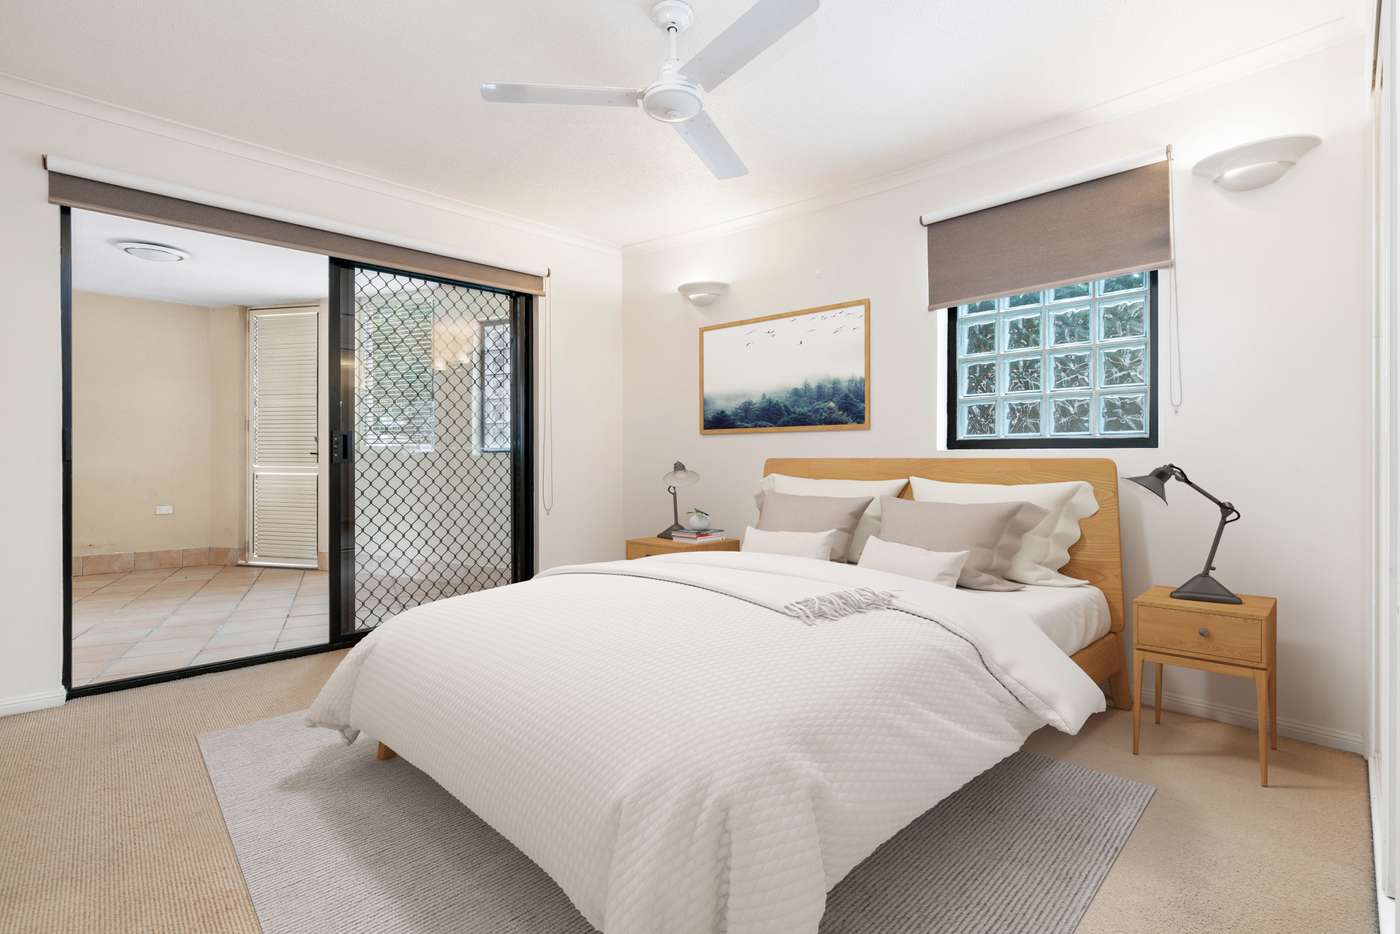 Seventh view of Homely apartment listing, 1/523 Coronation Drive, Toowong QLD 4066